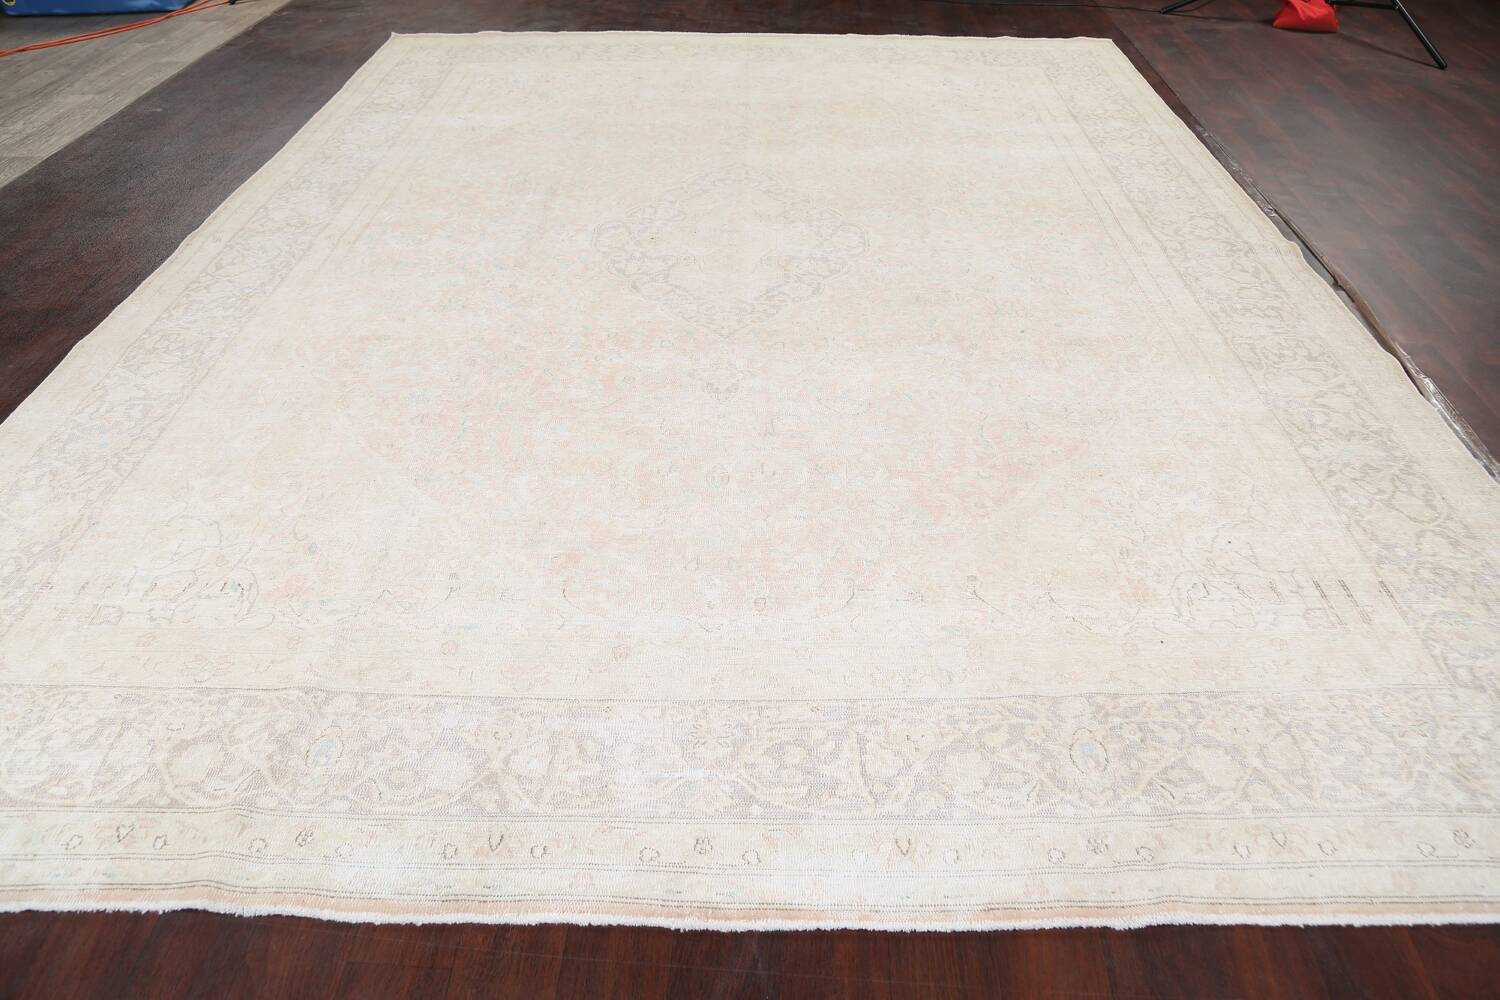 Antique Muted Distressed Kerman Persian Area Rug 10x12 image 16